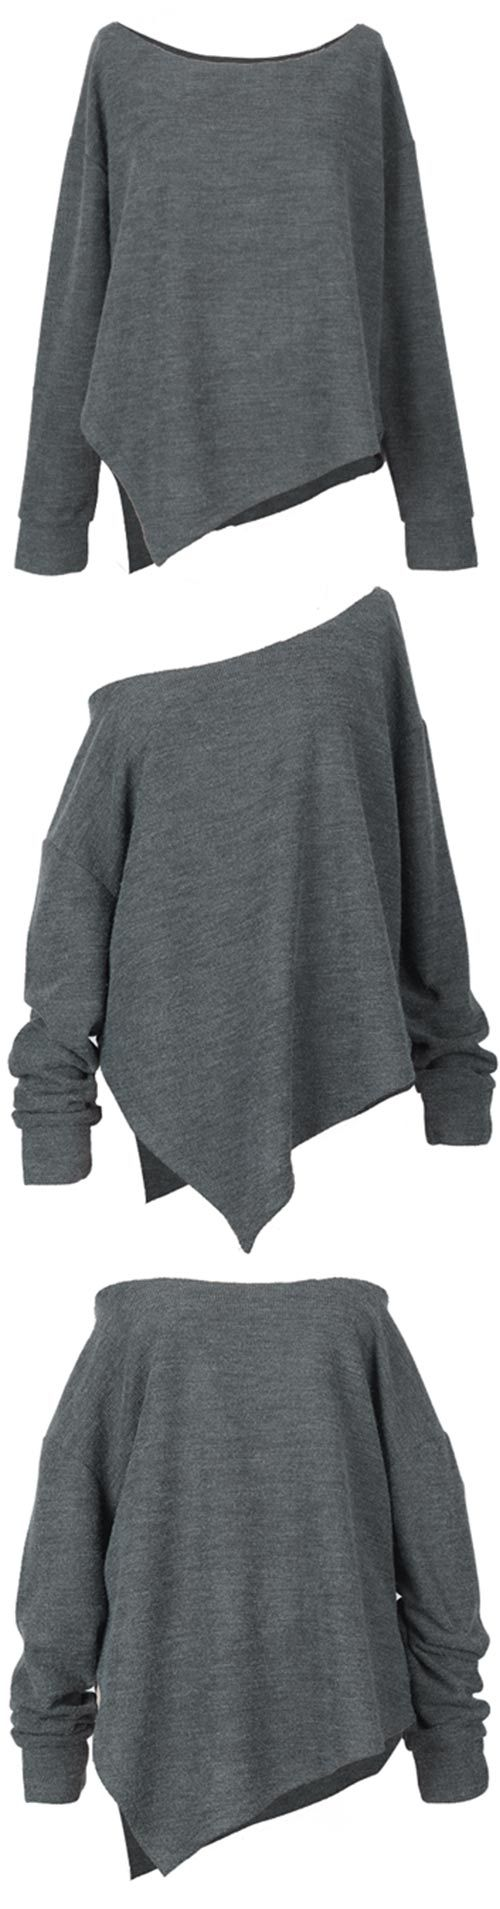 $21.99 can offer Seven-Day Shipping Time. Add this high-low top to your everyday wardrobe. Made from a soft lightweight material, this baby will surely keep you comfortable and cozy all day long. Add it now from Cupshe.com !